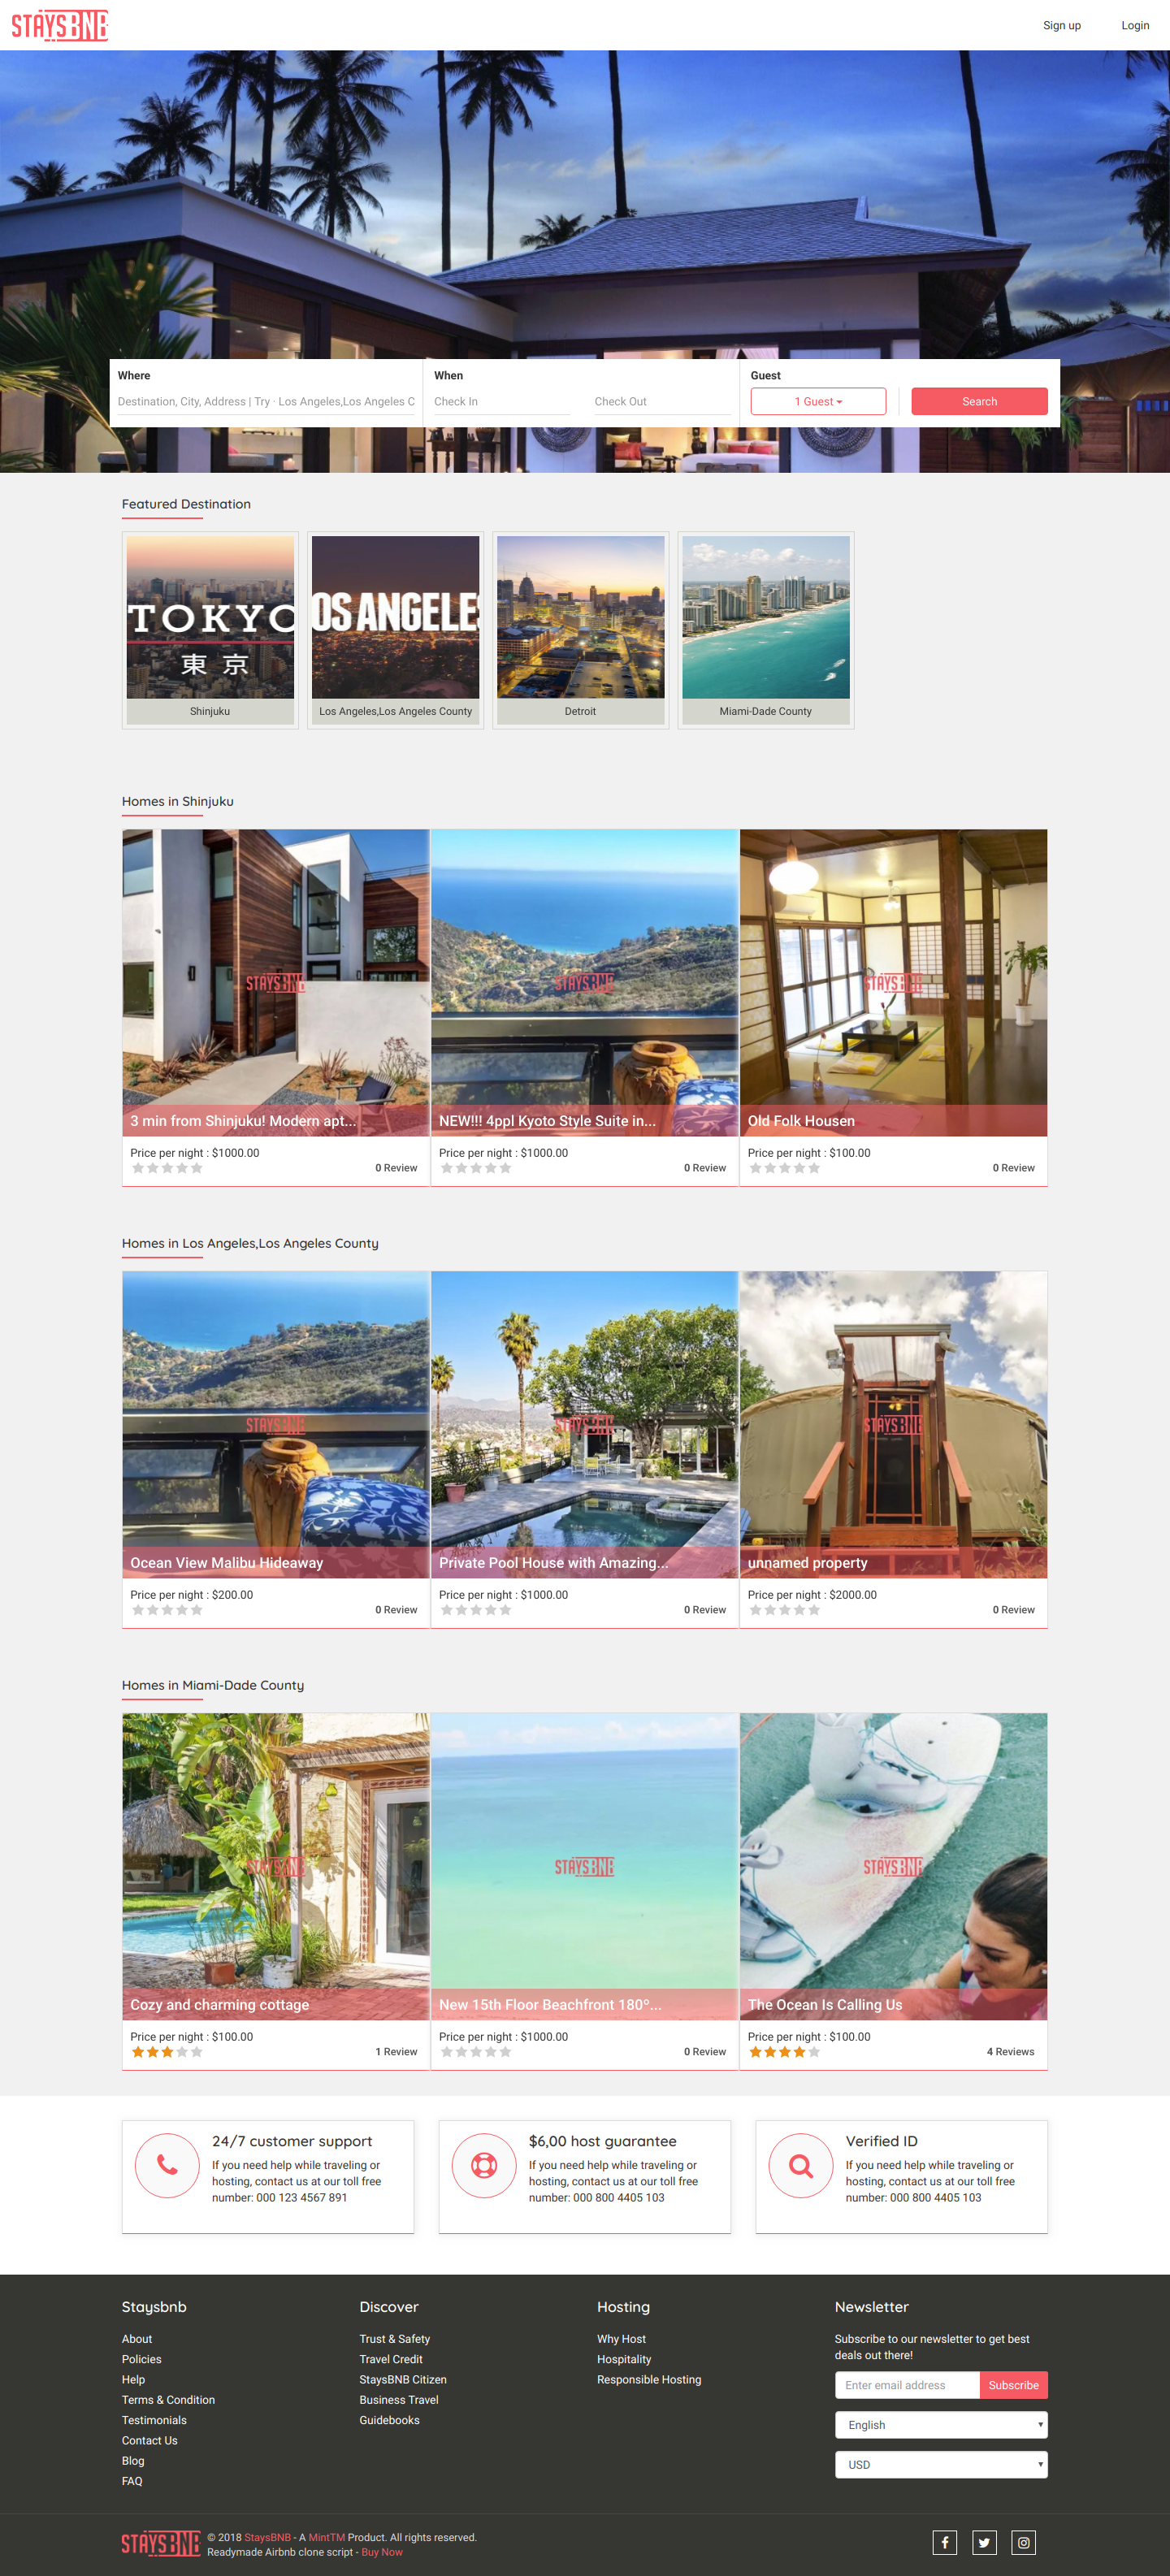 https://www.minttm.com/vacation-rental-script website snapshot